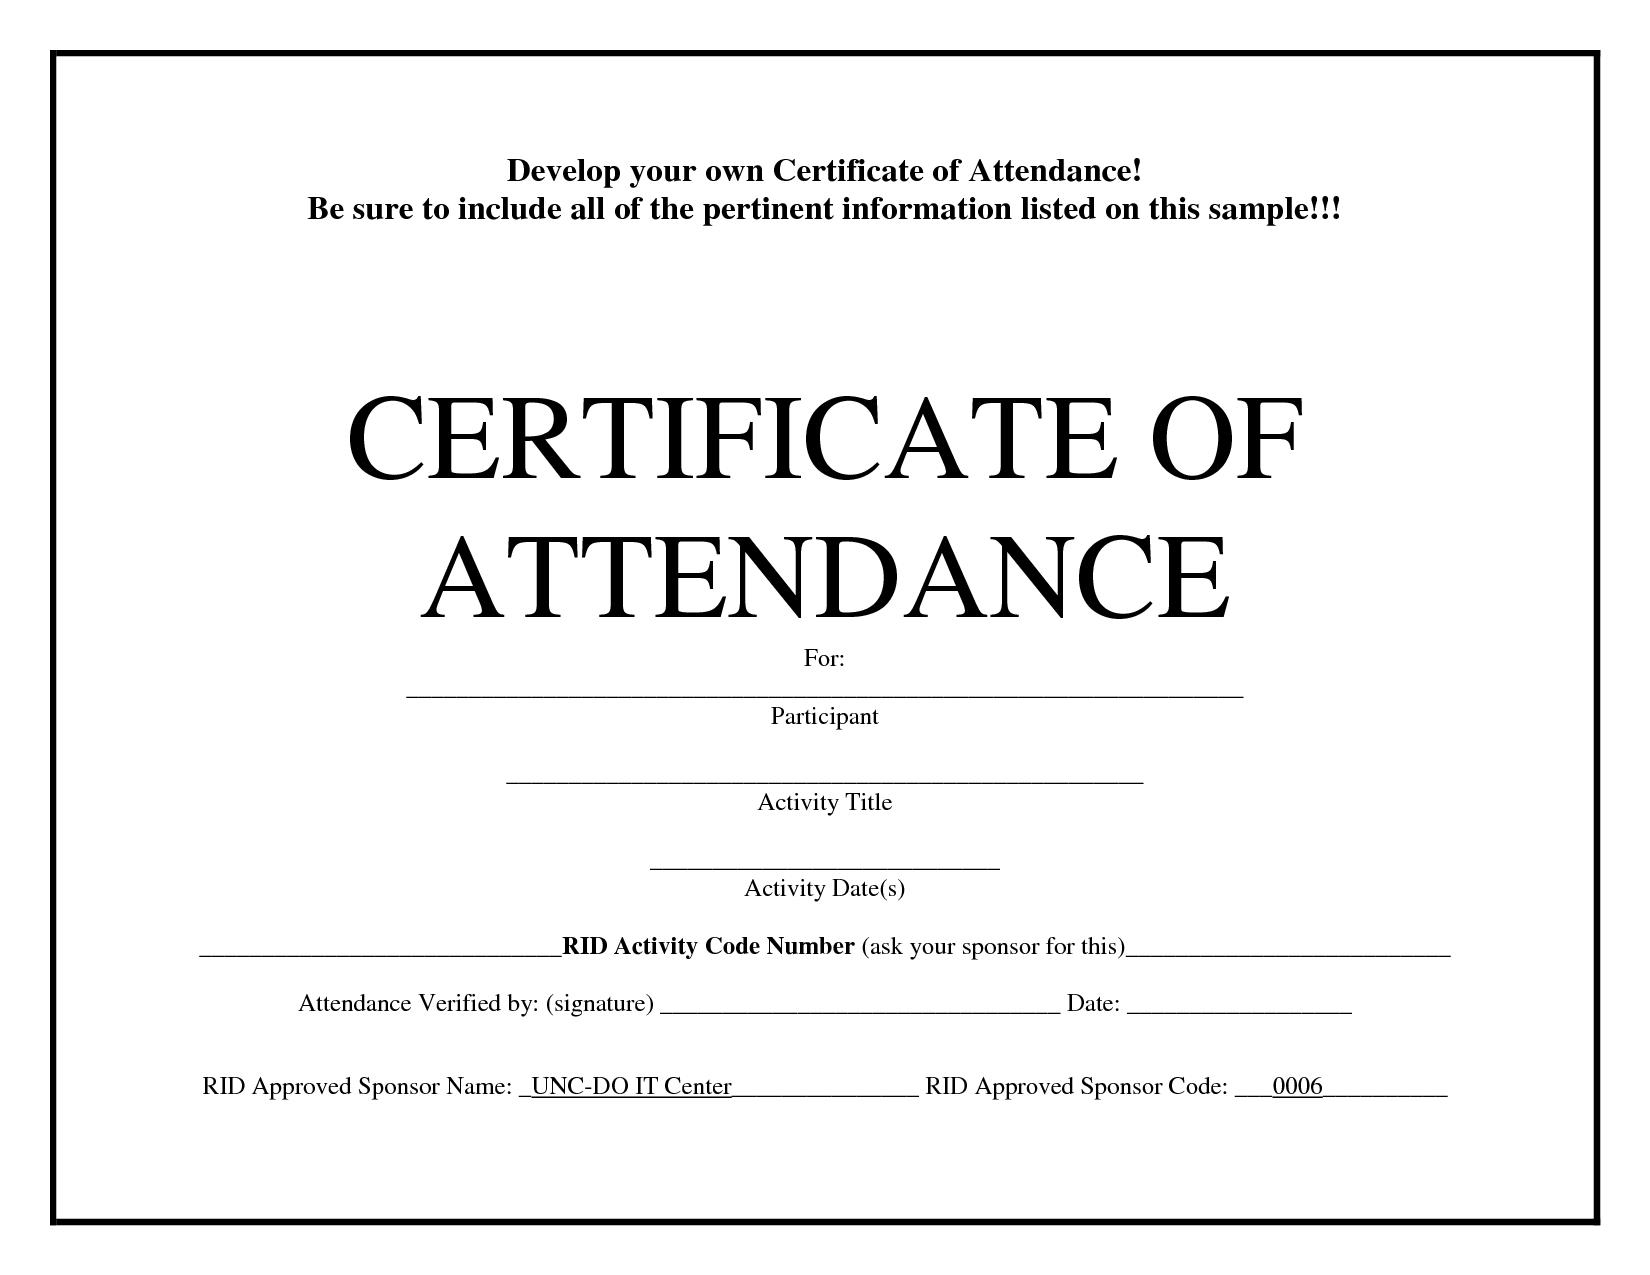 Certificate Of Attendance Template Free Download - Zohre In Attendance Certificate Template Word